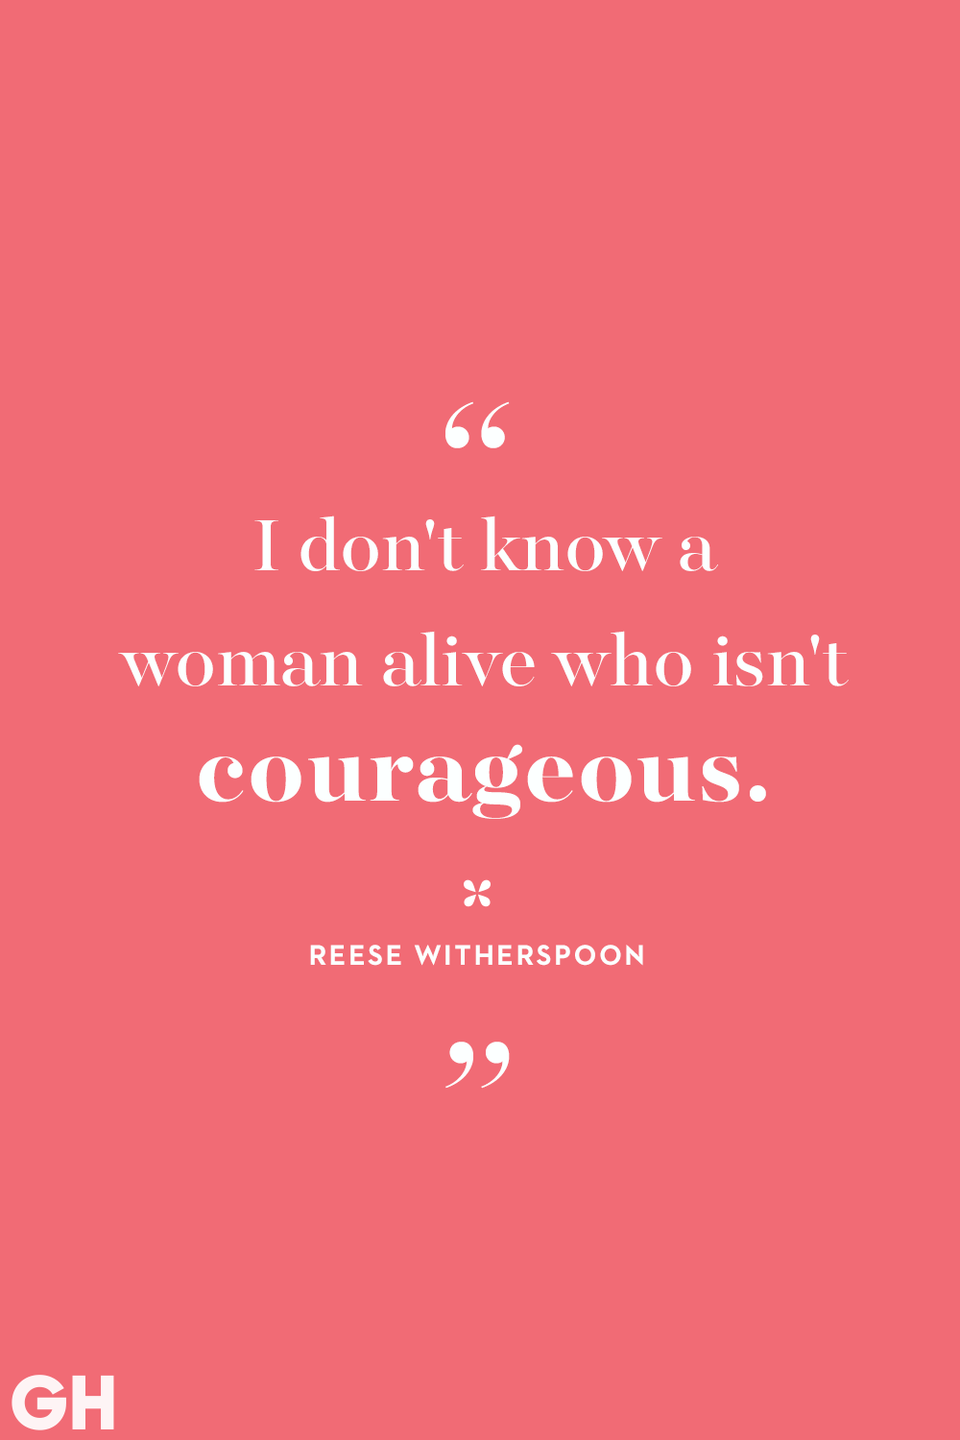 <p>I don't know a woman alive who isn't courageous.</p>